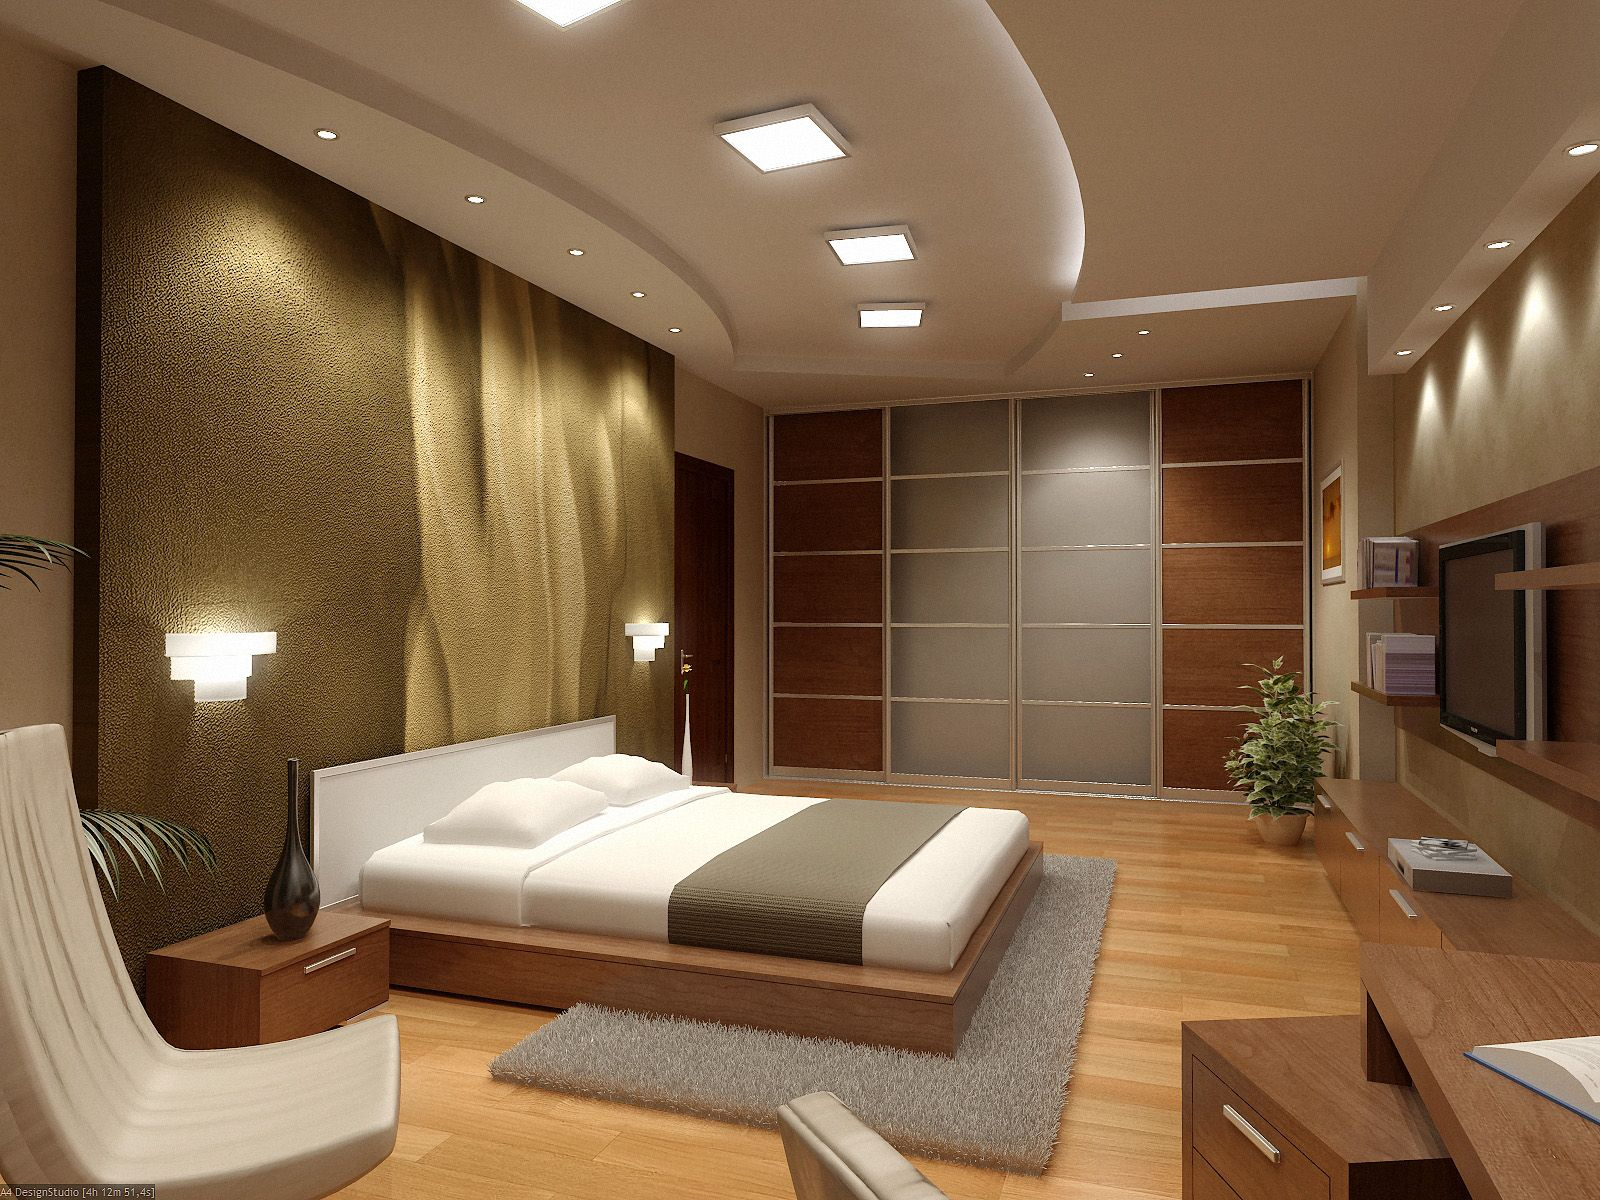 Brilliant Home Interior Design Bedrooms 1600 x 1200 · 367 kB · jpeg